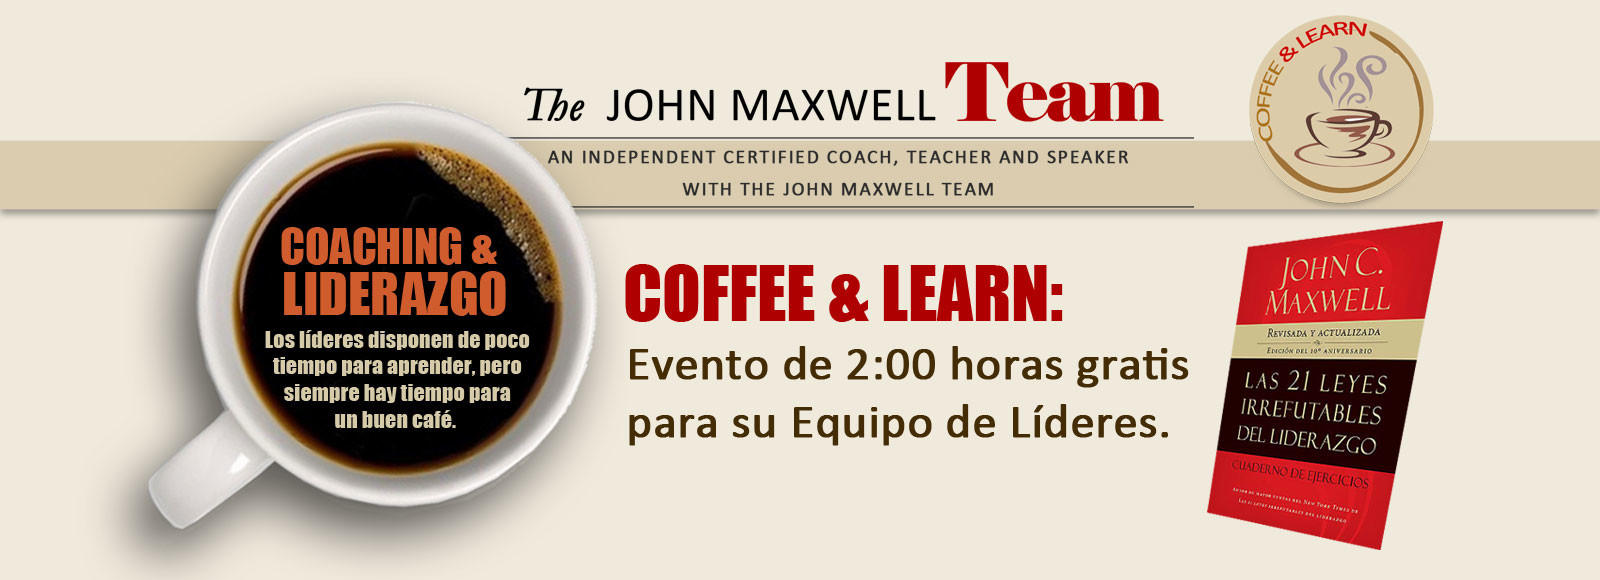 Coffee & Learn Gratis